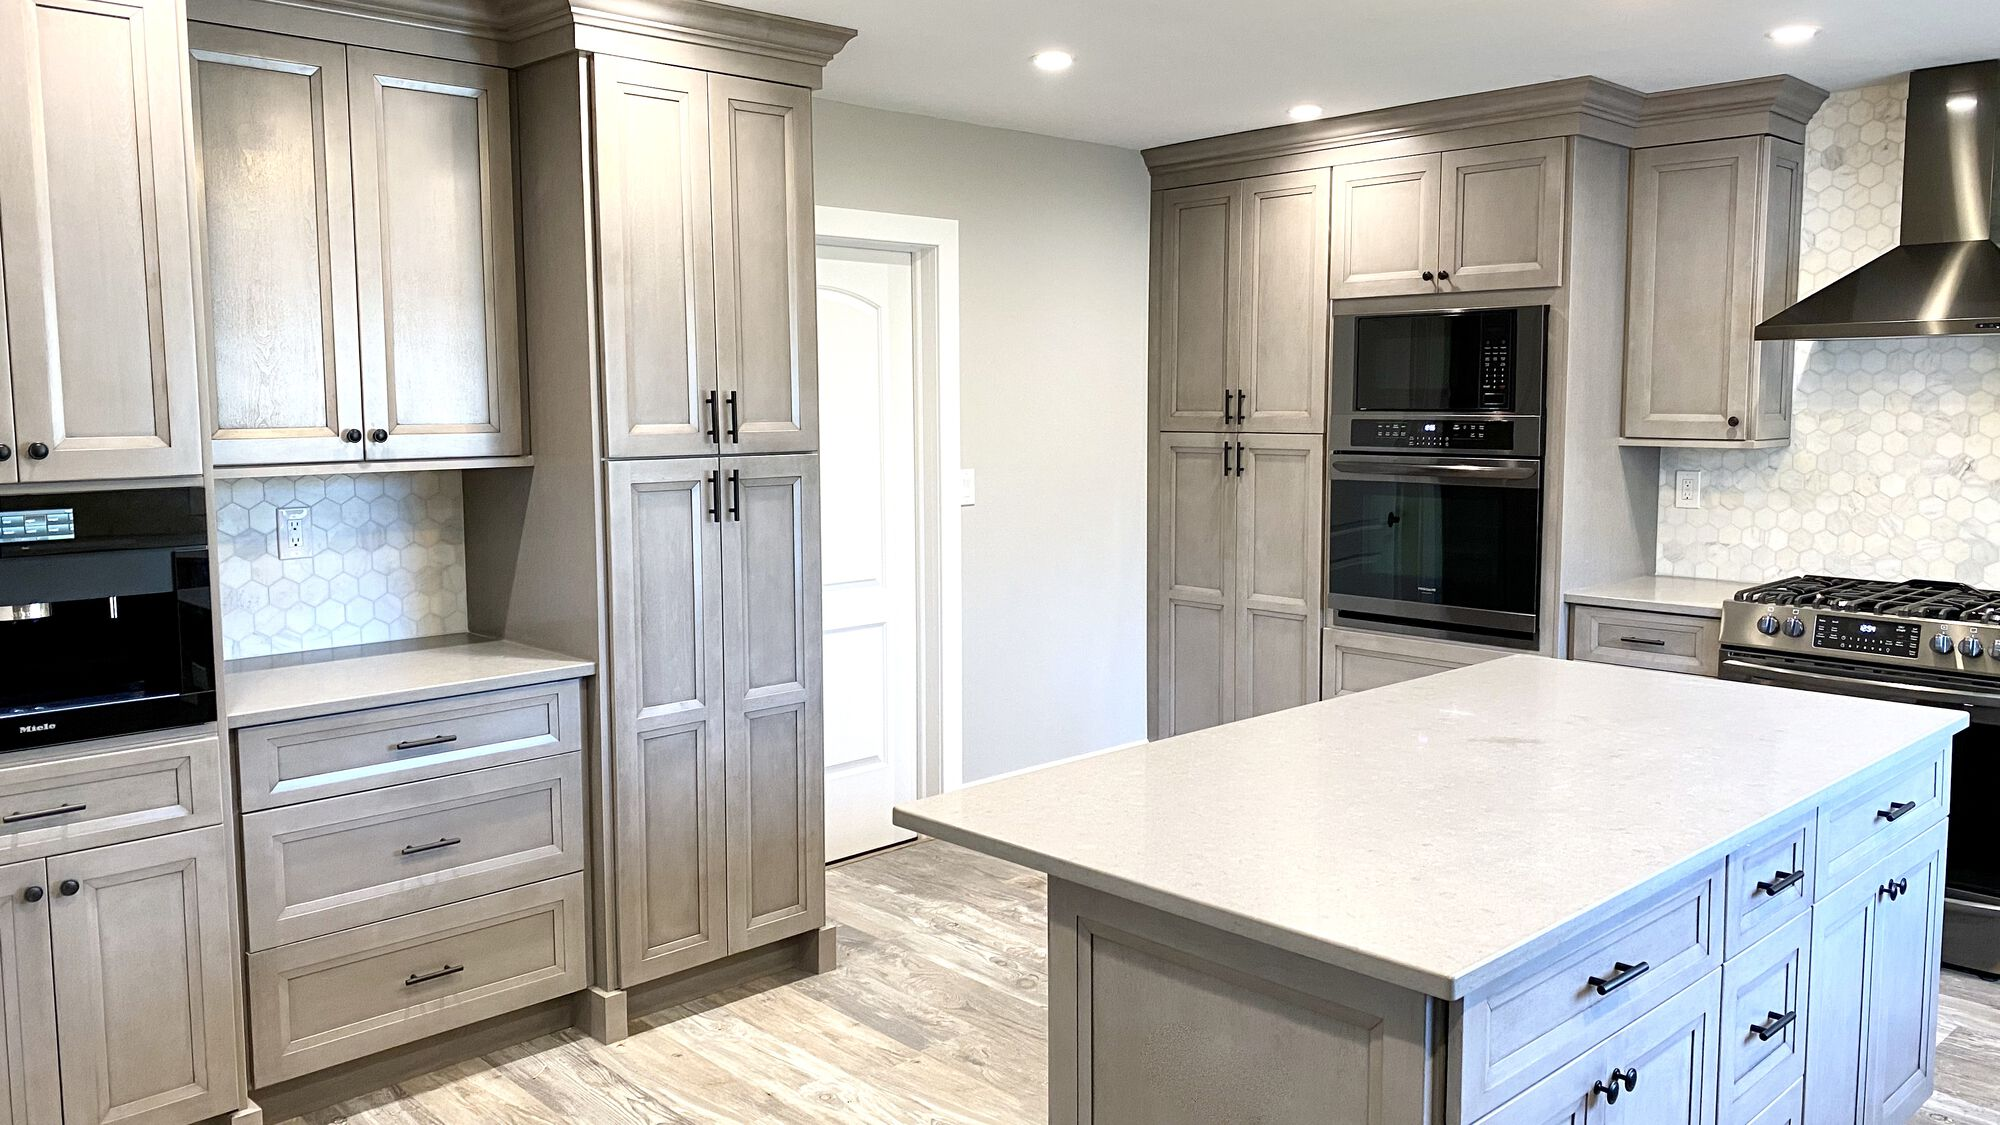 Fabuwood Onyx Horizon Cabinetry in Piscataway, Middlesex County NJ